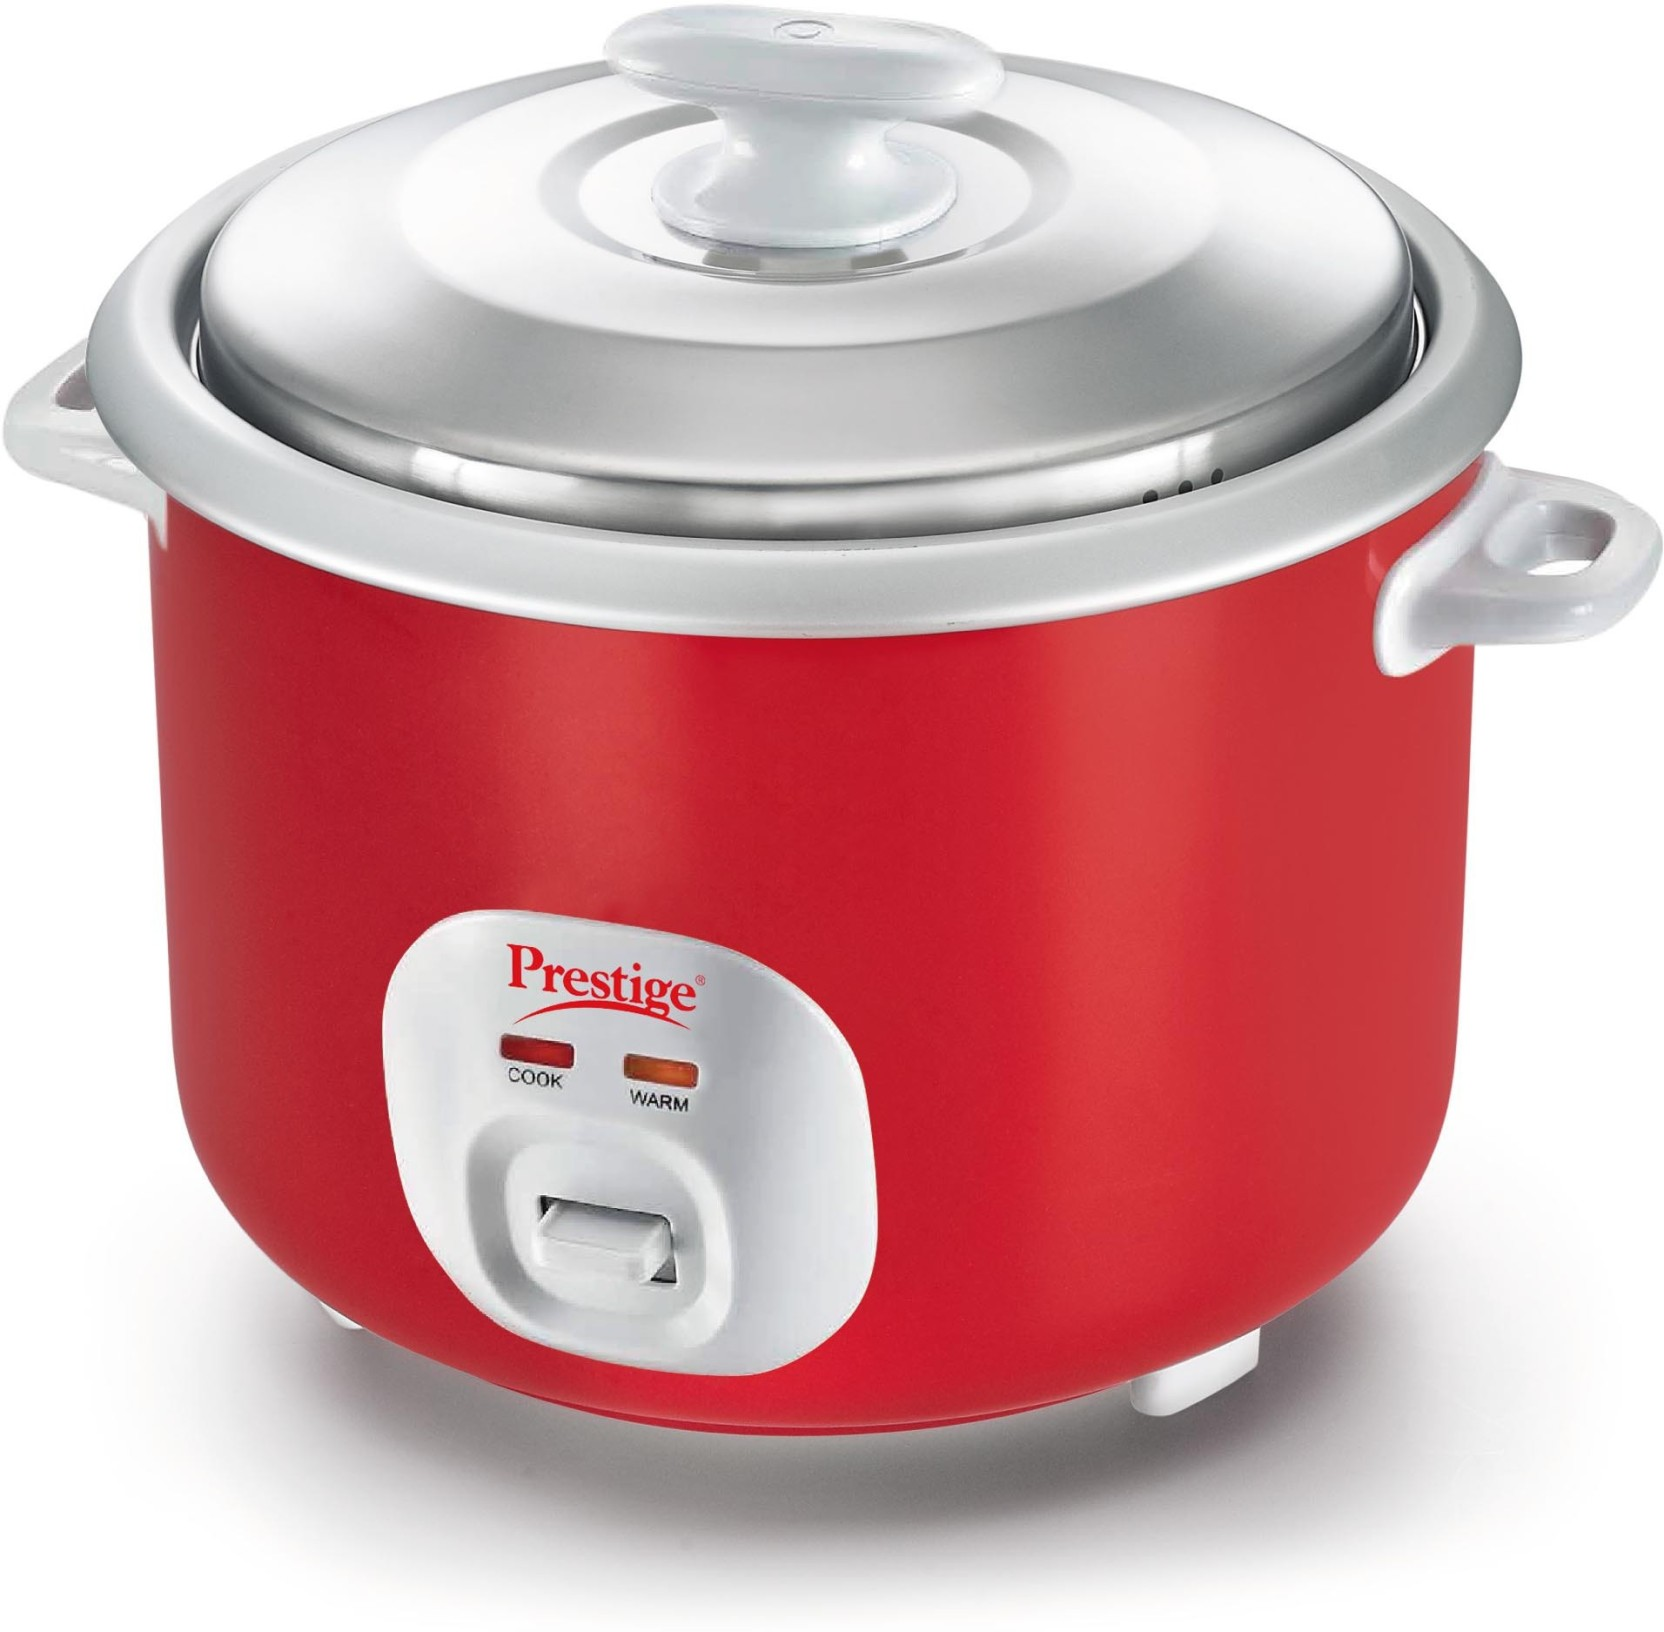 Prestige Delight Electric Rice Cooker Cute 28 2 Add To Cart